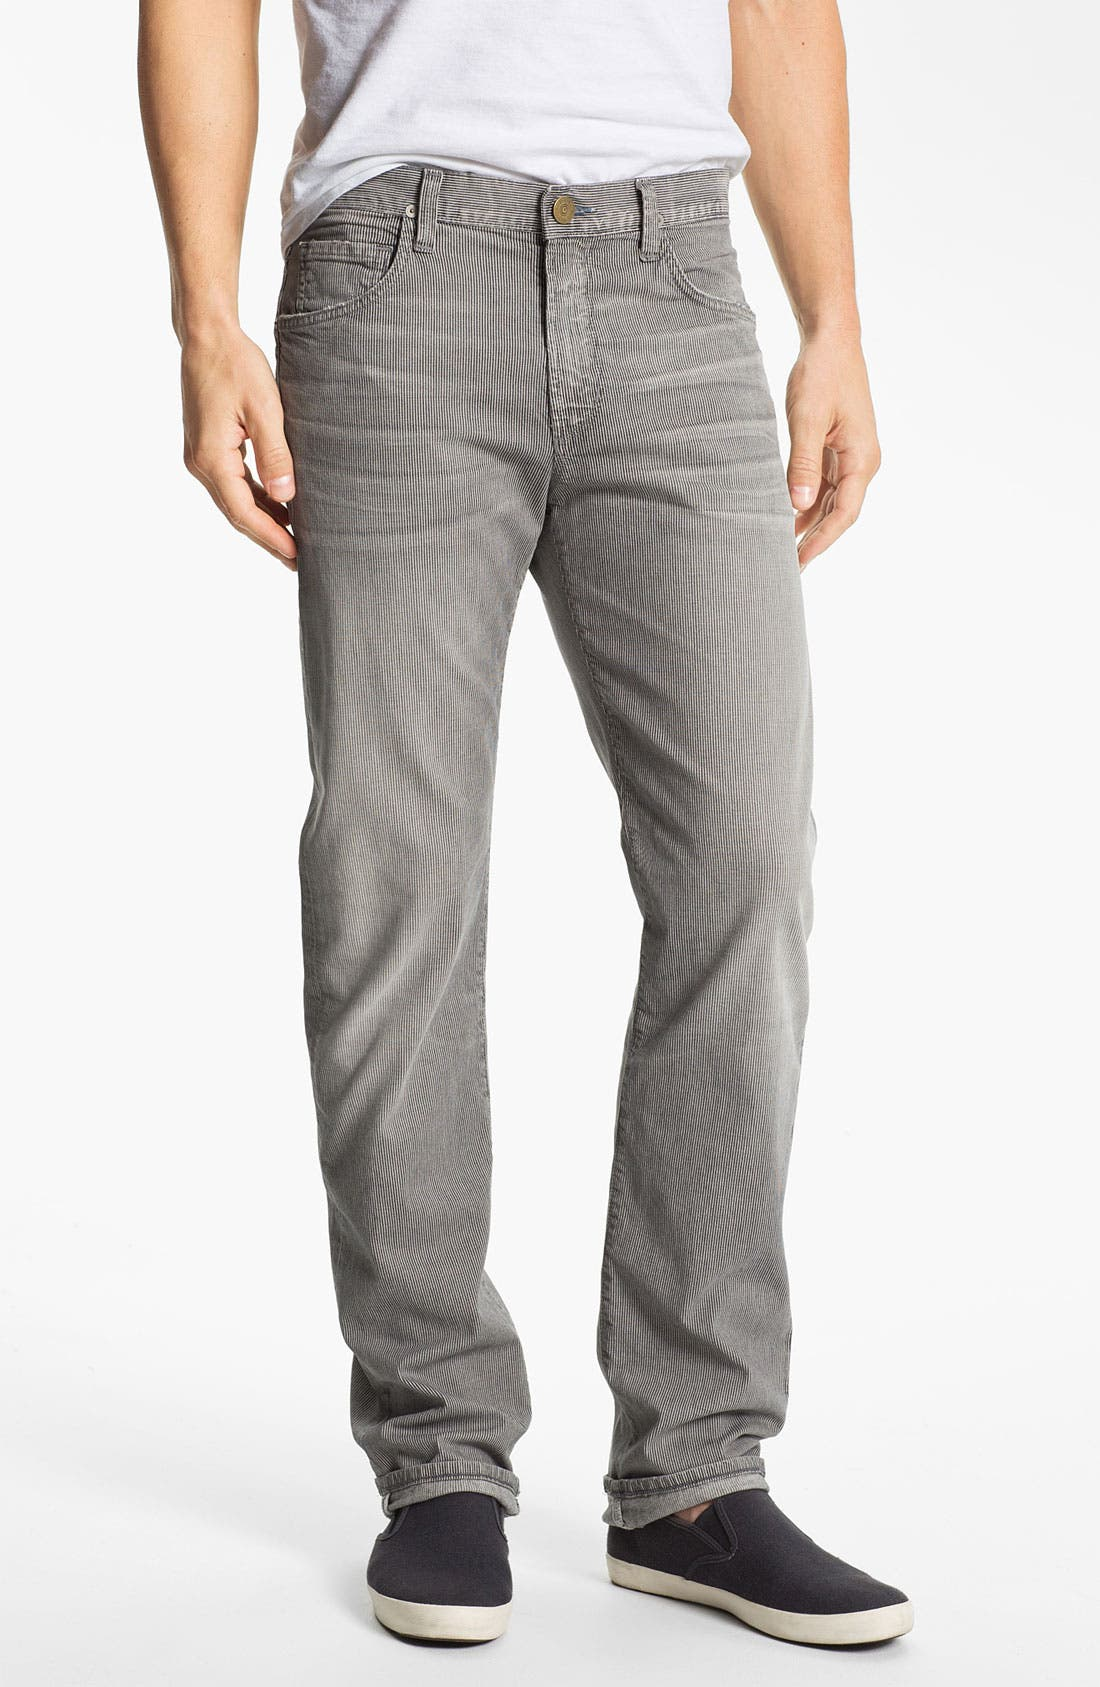 Alternate Image 1 Selected - Citizens of Humanity 'Core' Stripe Slim Fit Jeans (Denzel) (Online Only)